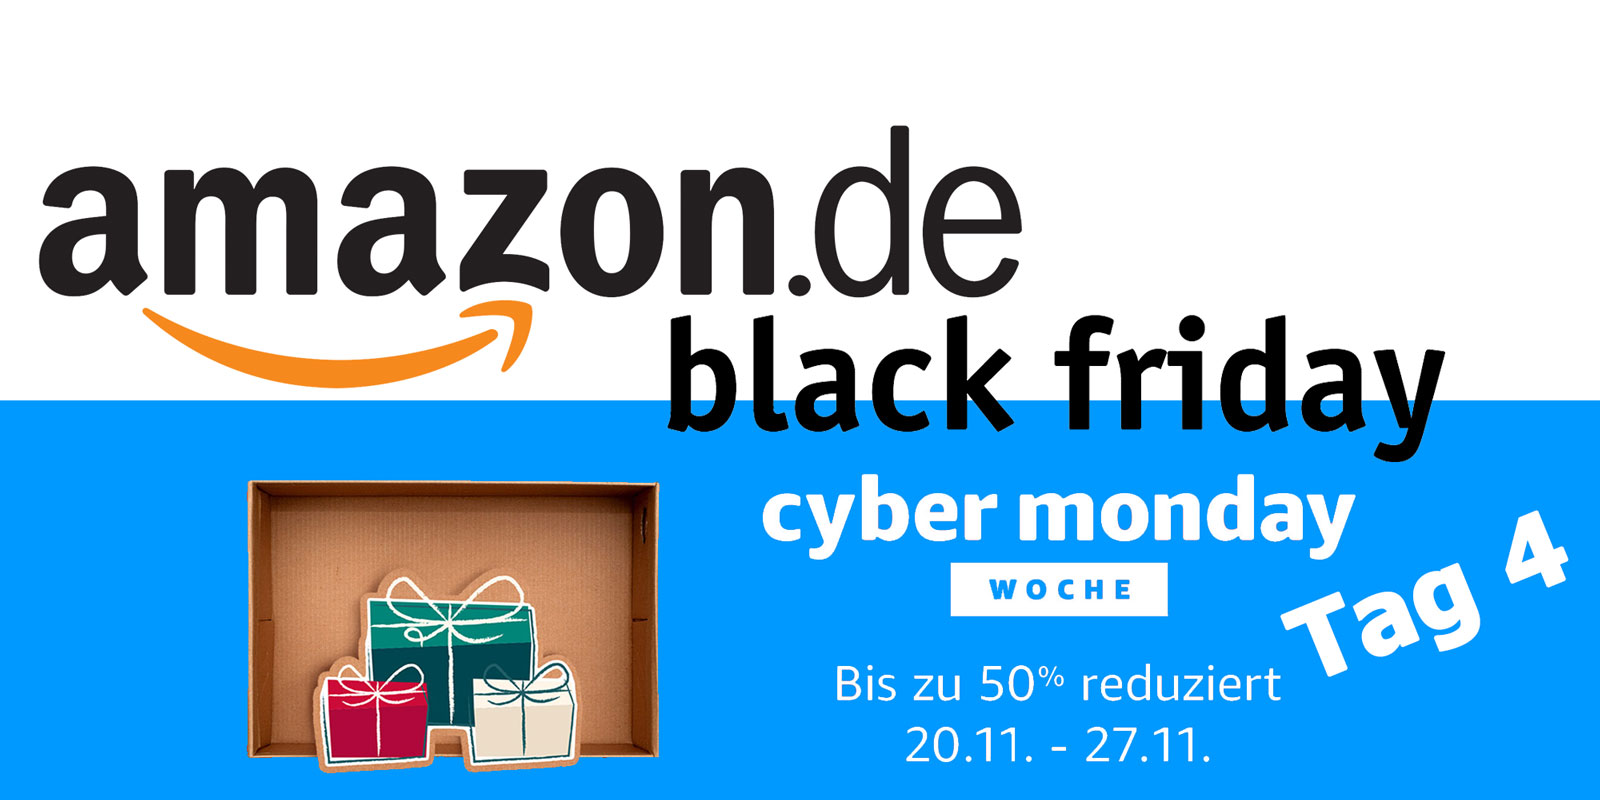 Black Friday Woche Amazon Cyber Monday Woche Und Black Friday 2017 Tag 4 Smart